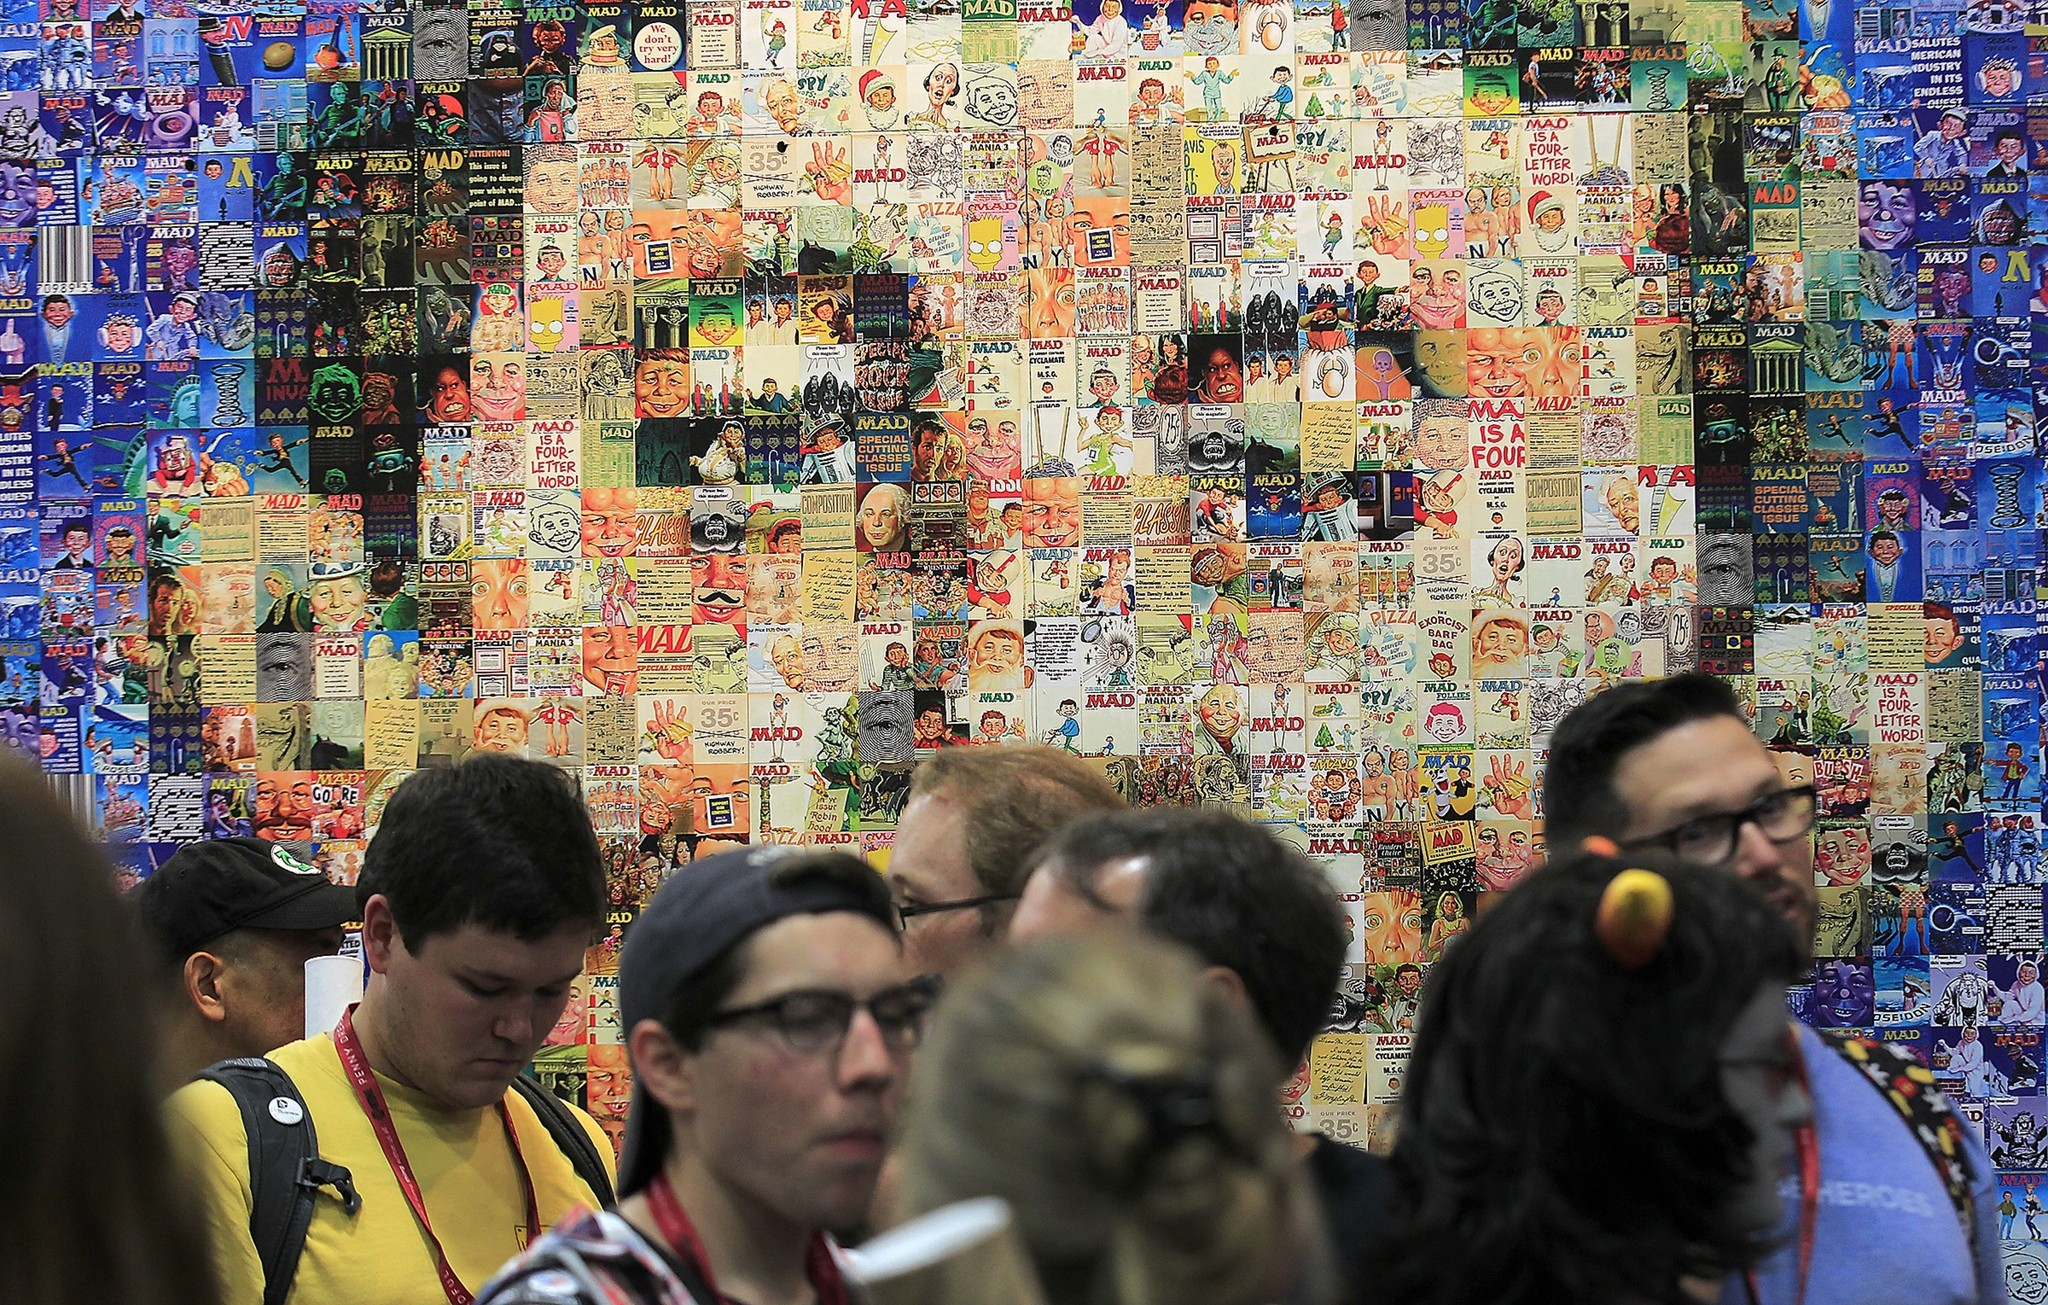 The face of fictitious mascot and cover boy Alfred E. Neuman shines through in a compilation of MAD magazine covers. (Brian van der Brug / Los Angeles Times)